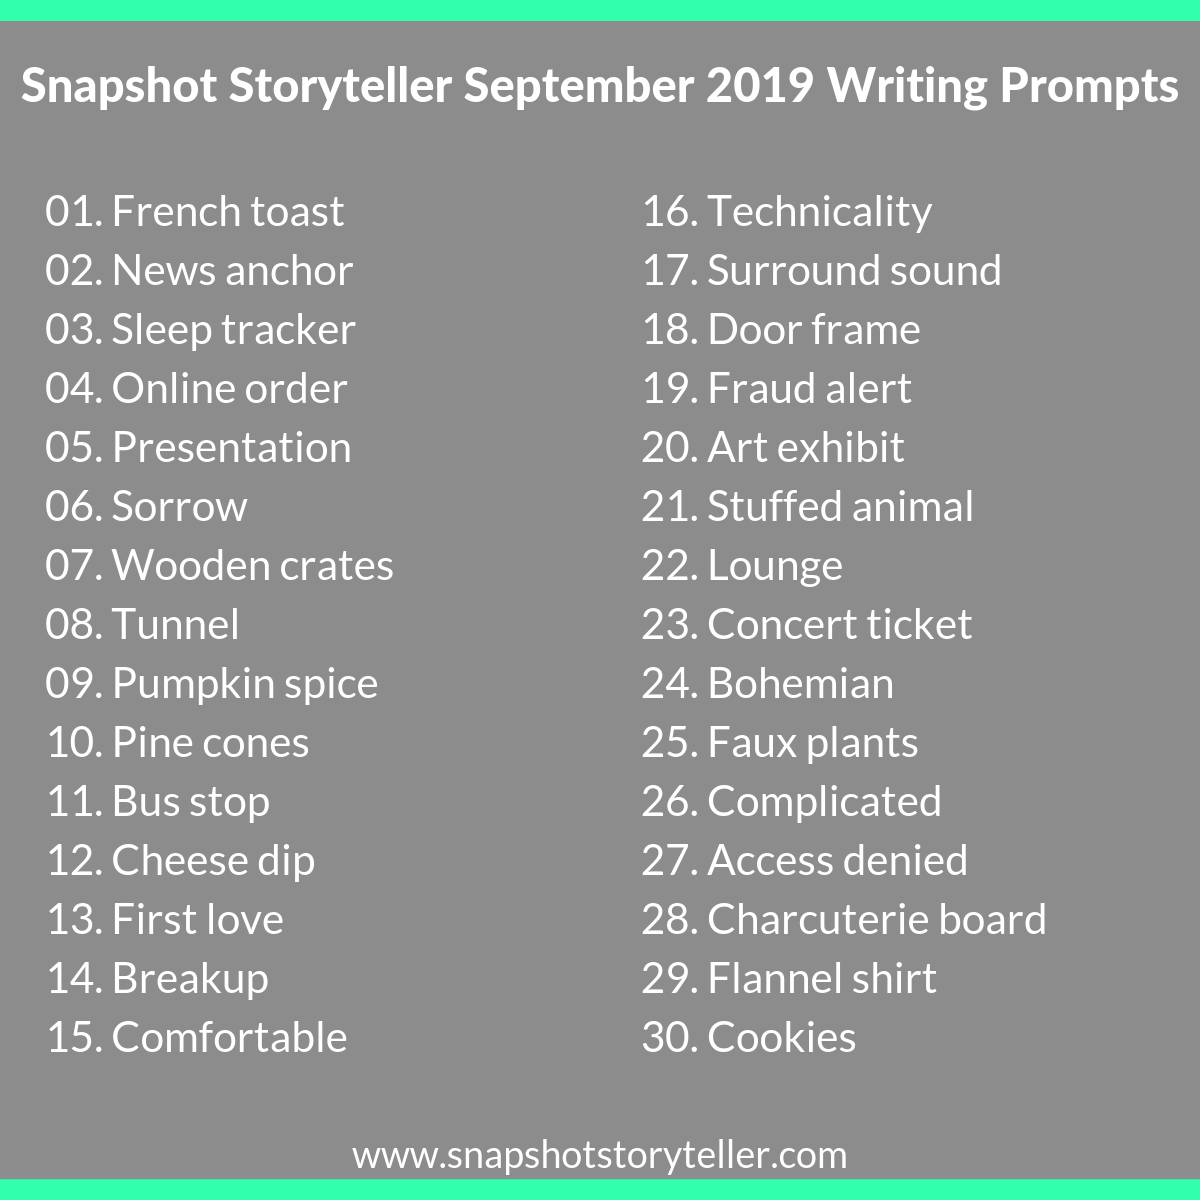 Snapshot Storyteller | September 2019 Writing Prompts | www.snapshotstoryteller.com #amwriting #snapshotstoryteller #creativestoryteller #creative #storyteller #creativewriter #IWrite #WriteOn #writingprompts #writingprompt